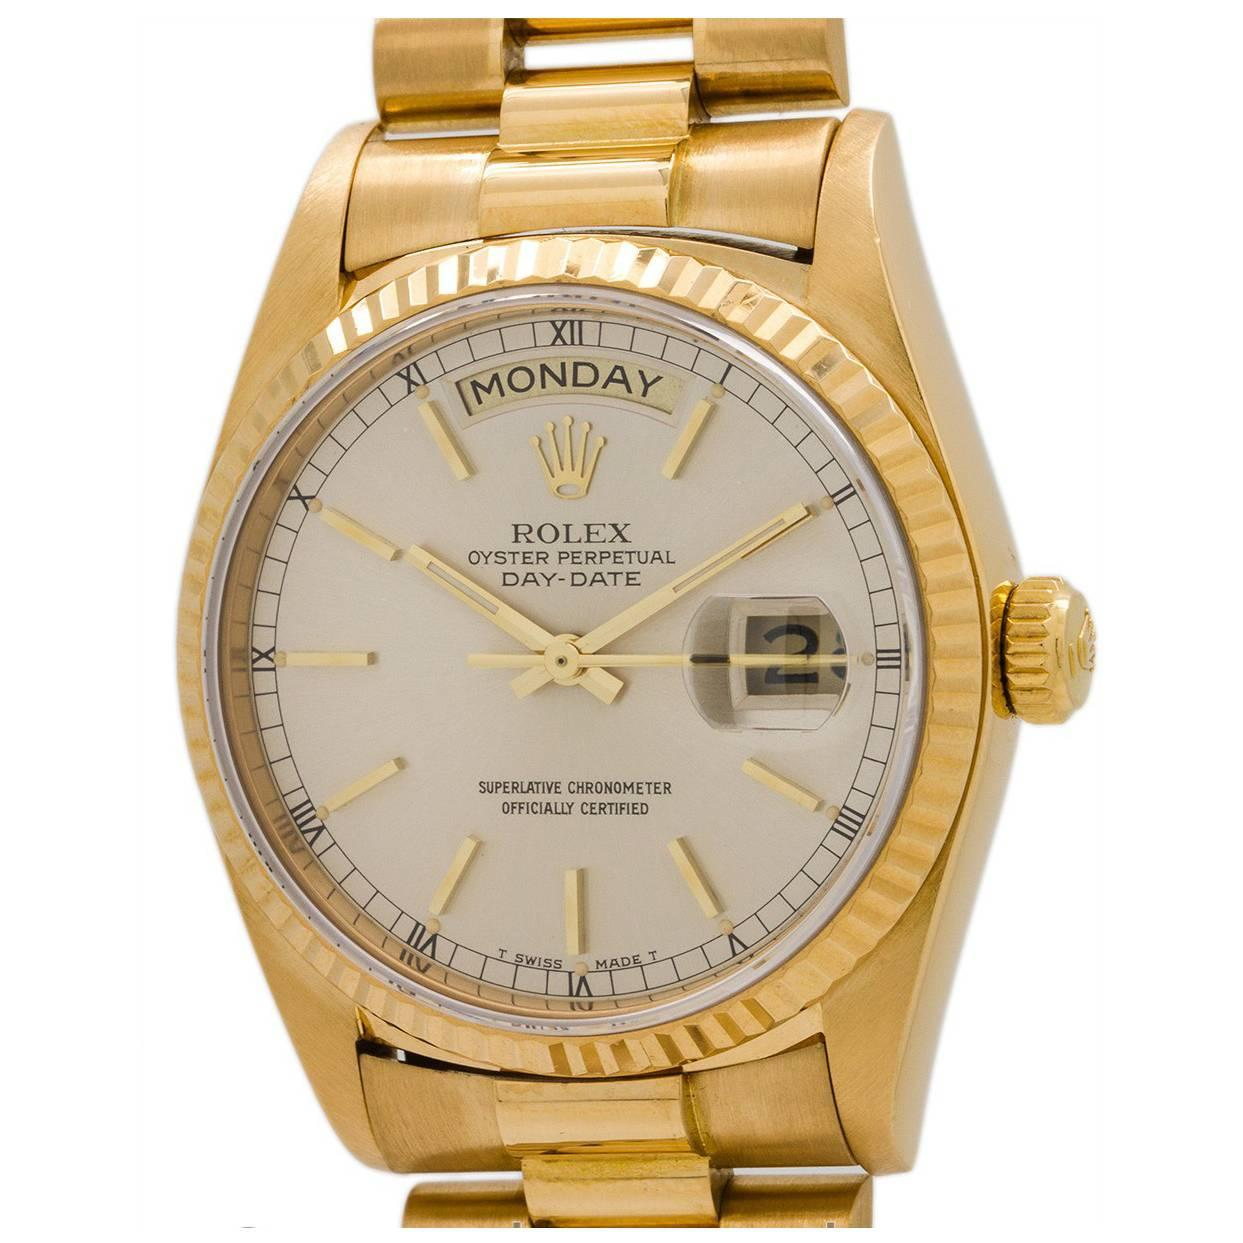 Rolex Oyster Perpetual Datejust Gold Price